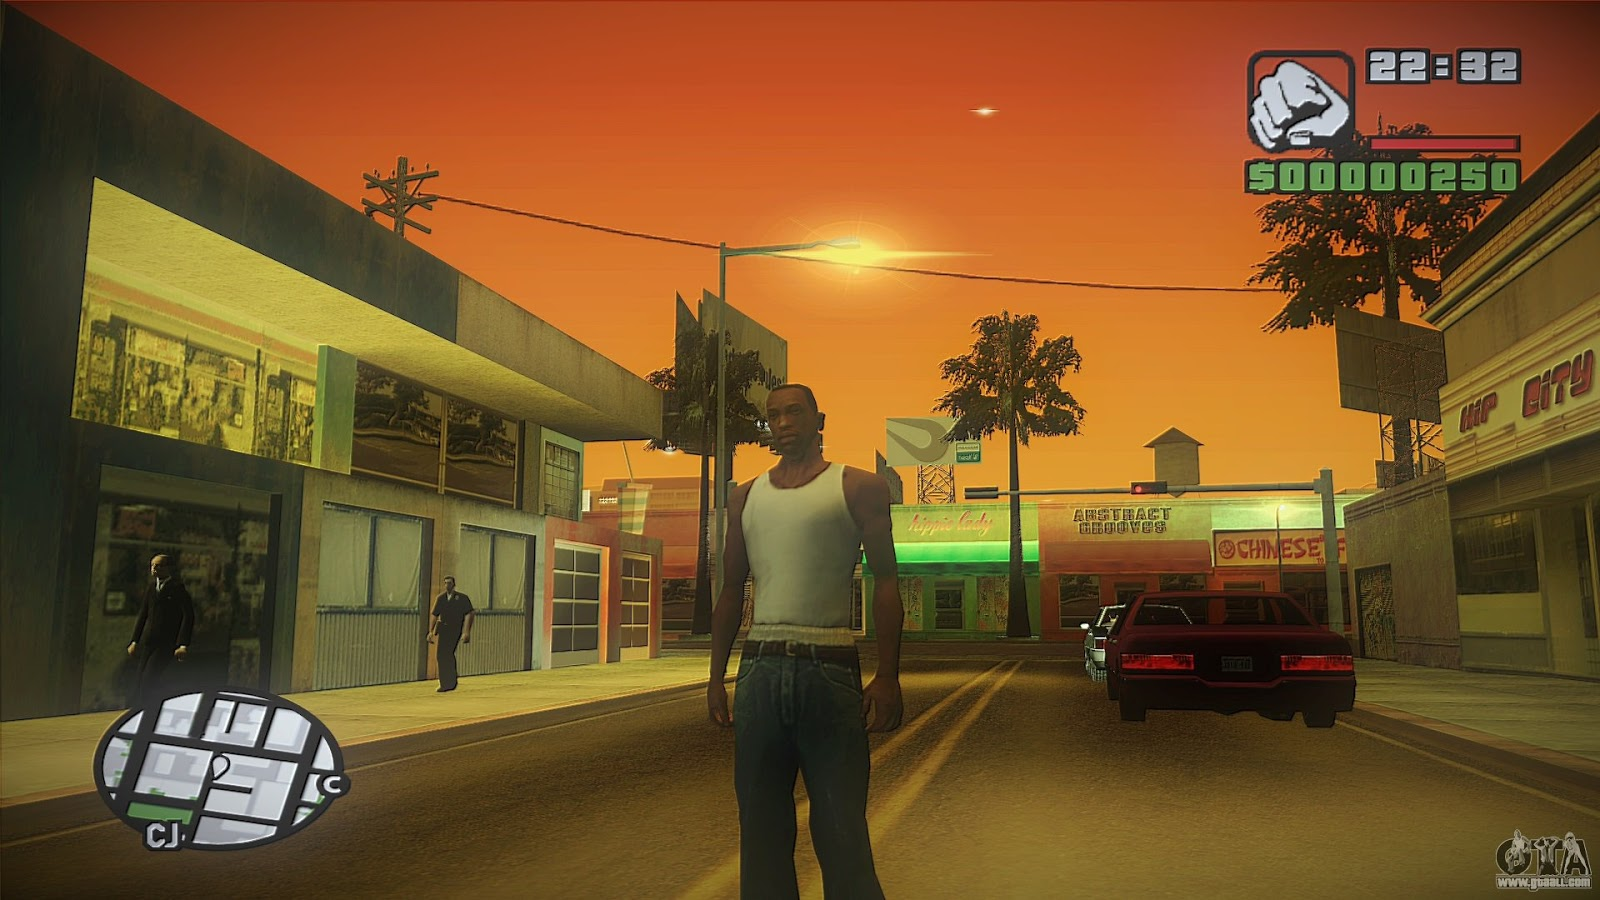 gta san andreas game free download for pc full version rar